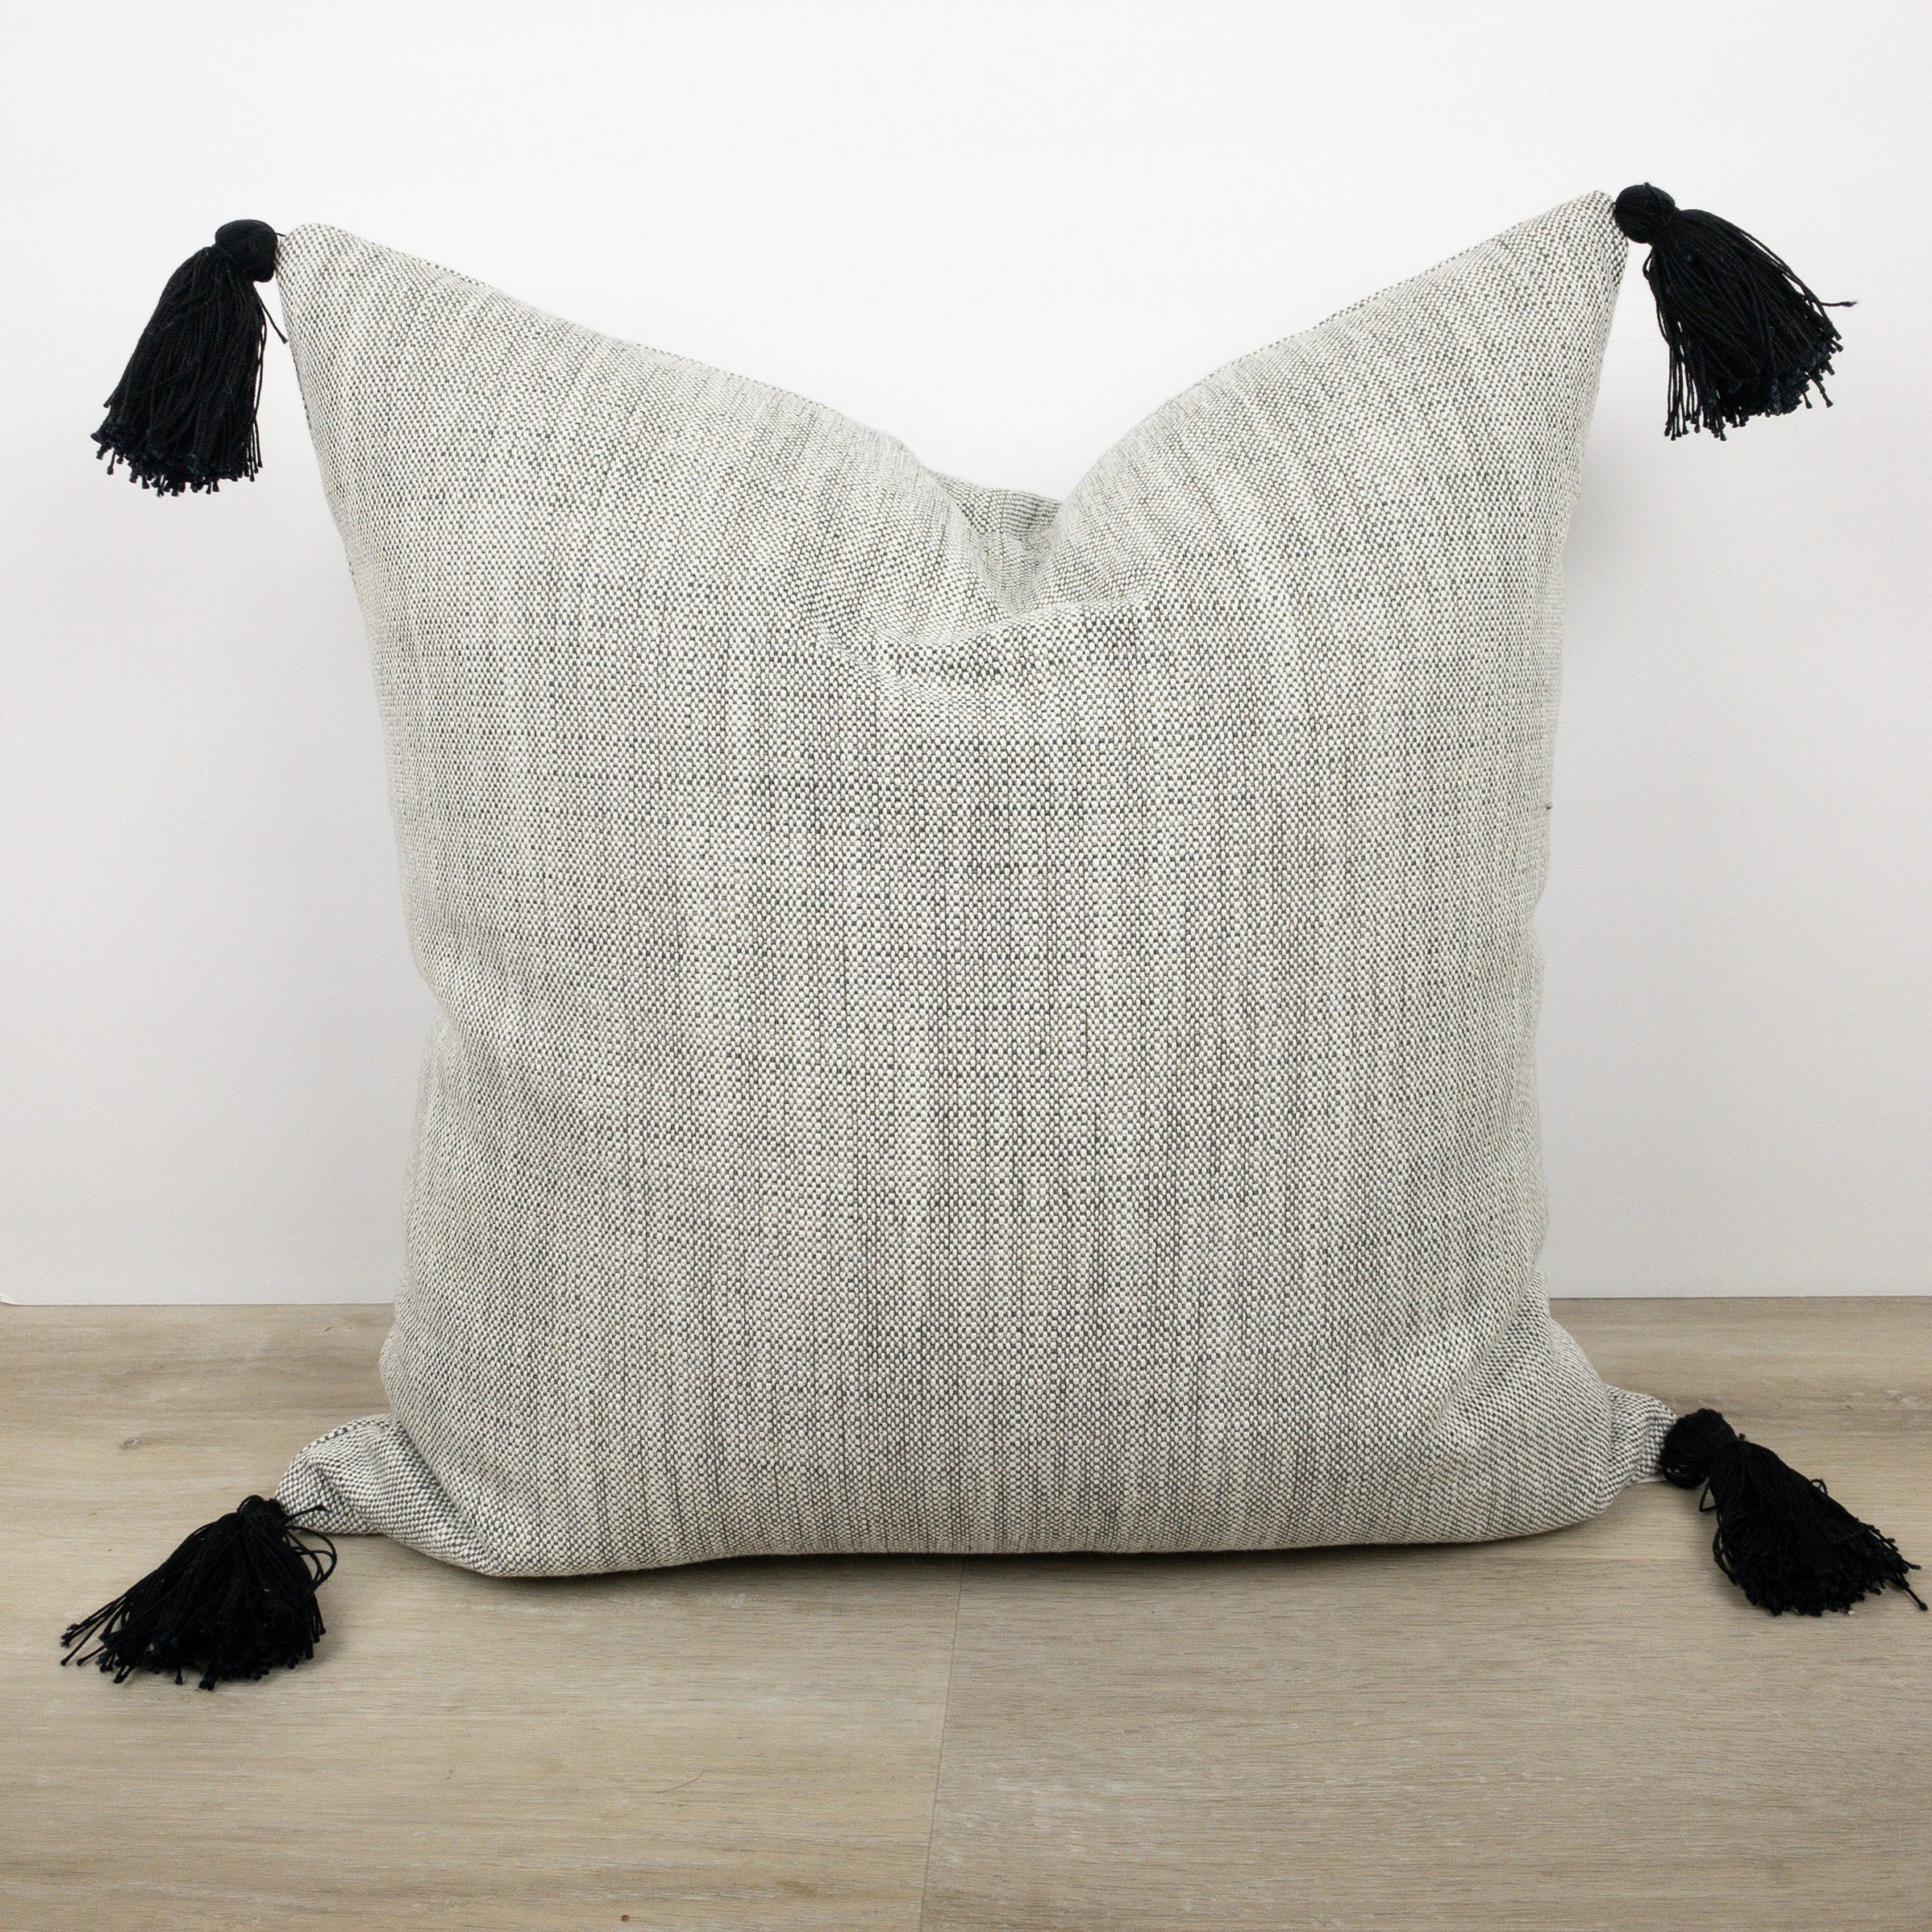 Salt and pepper black tassel pillow